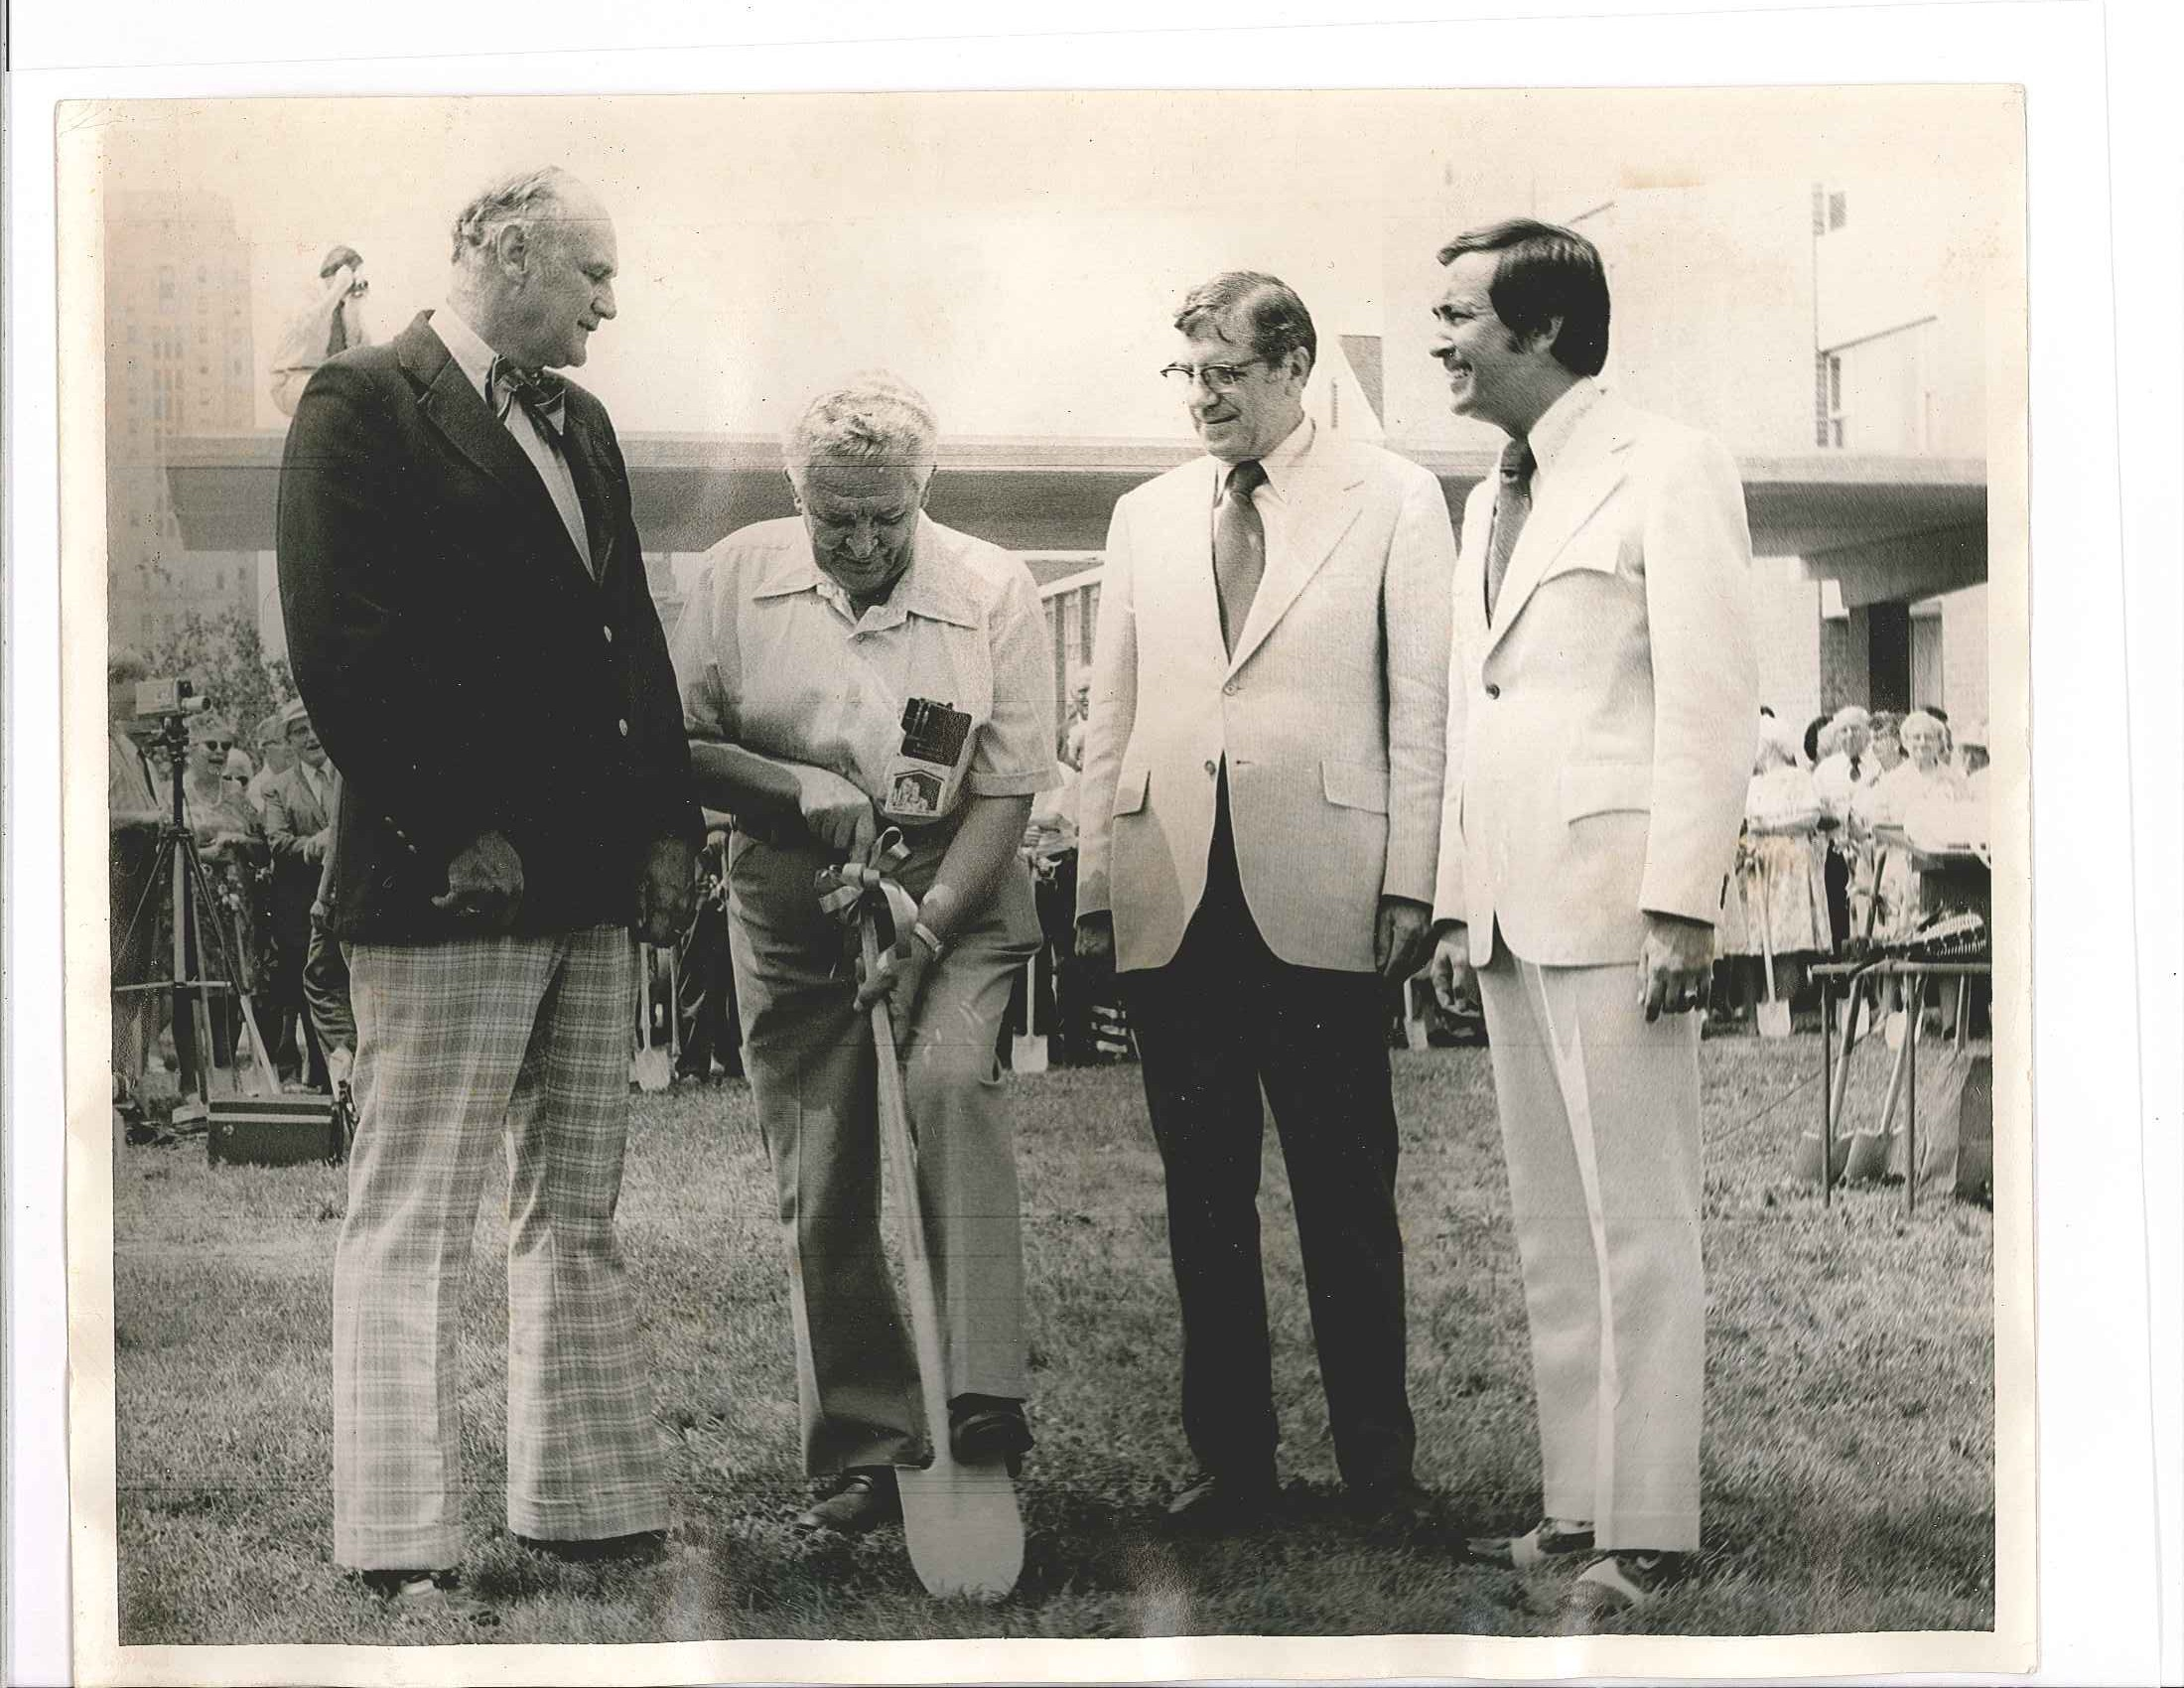 Groundbreaking for the Horizon Center took place in 1974.